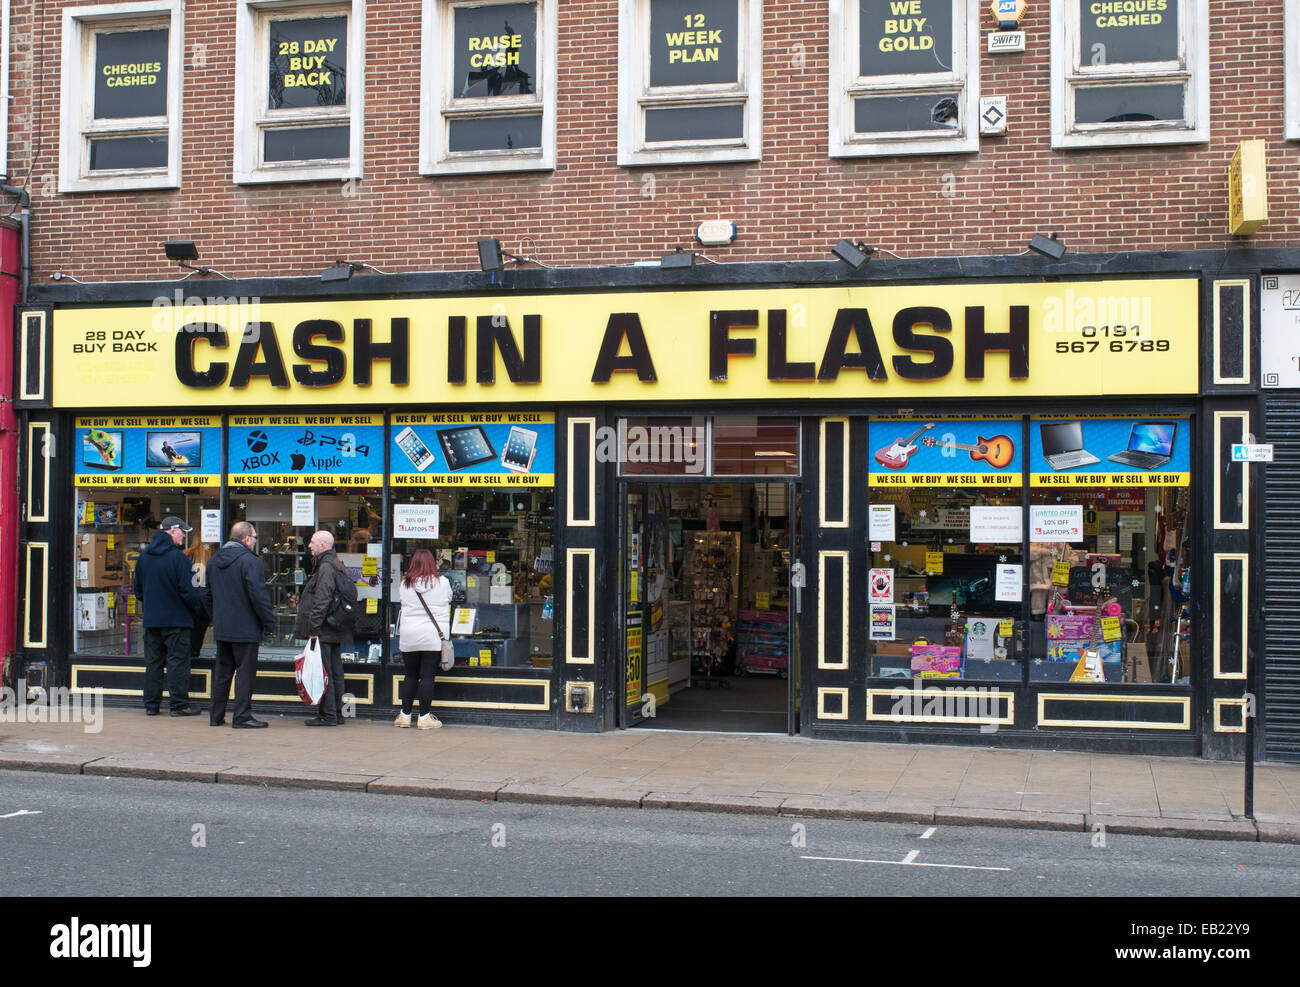 Cash in a Flash second hand and pawn shop in Sunderland, north east England, UK - Stock Image